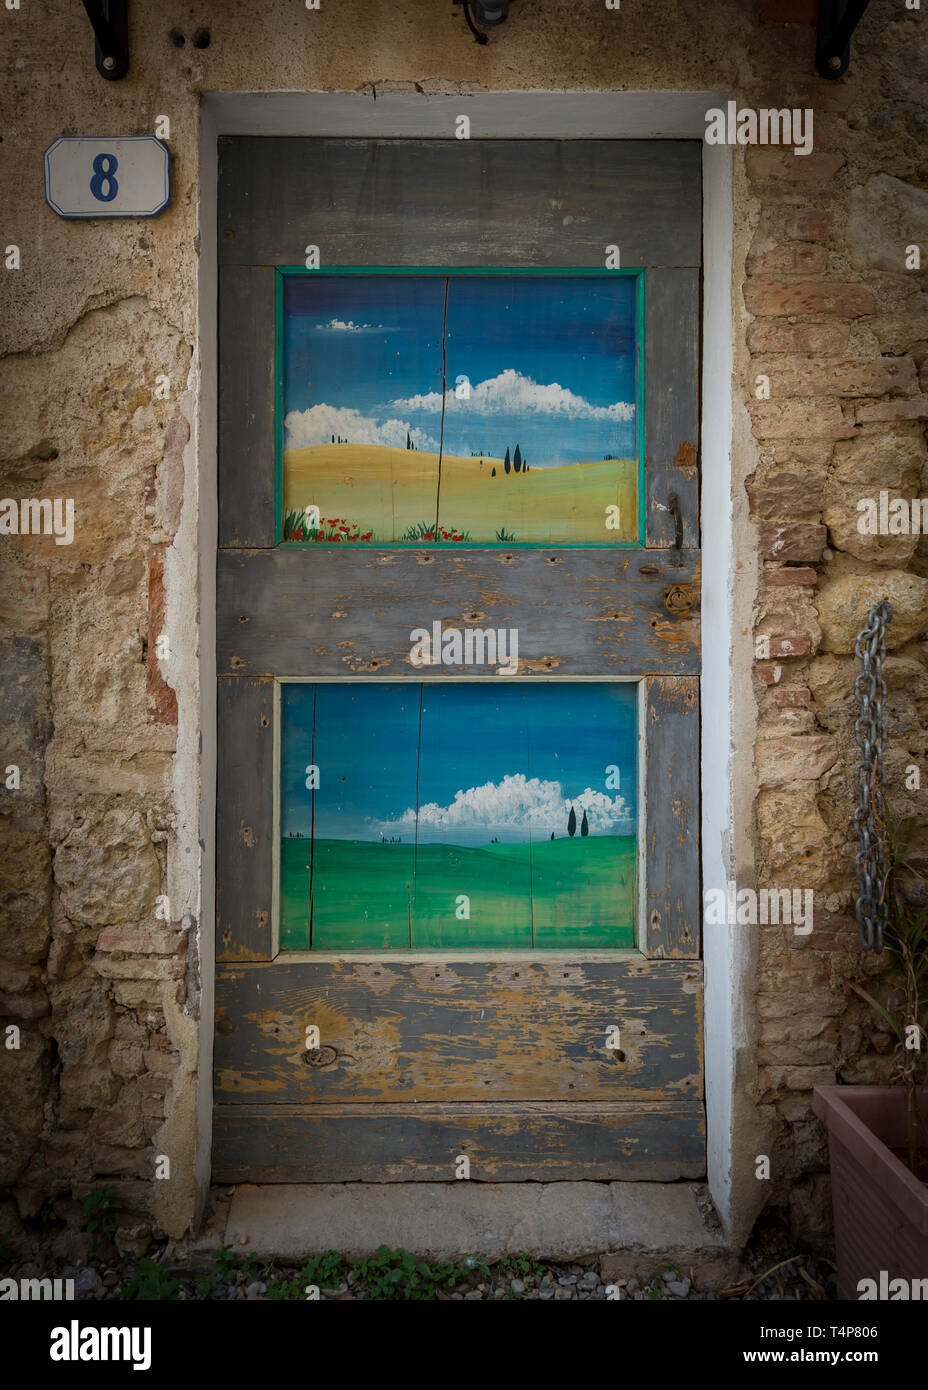 Rustic Door with Tuscan Scenes in the Medieval Fortified Town of  Monteriggioni in Tuscany, Italy - Stock Image